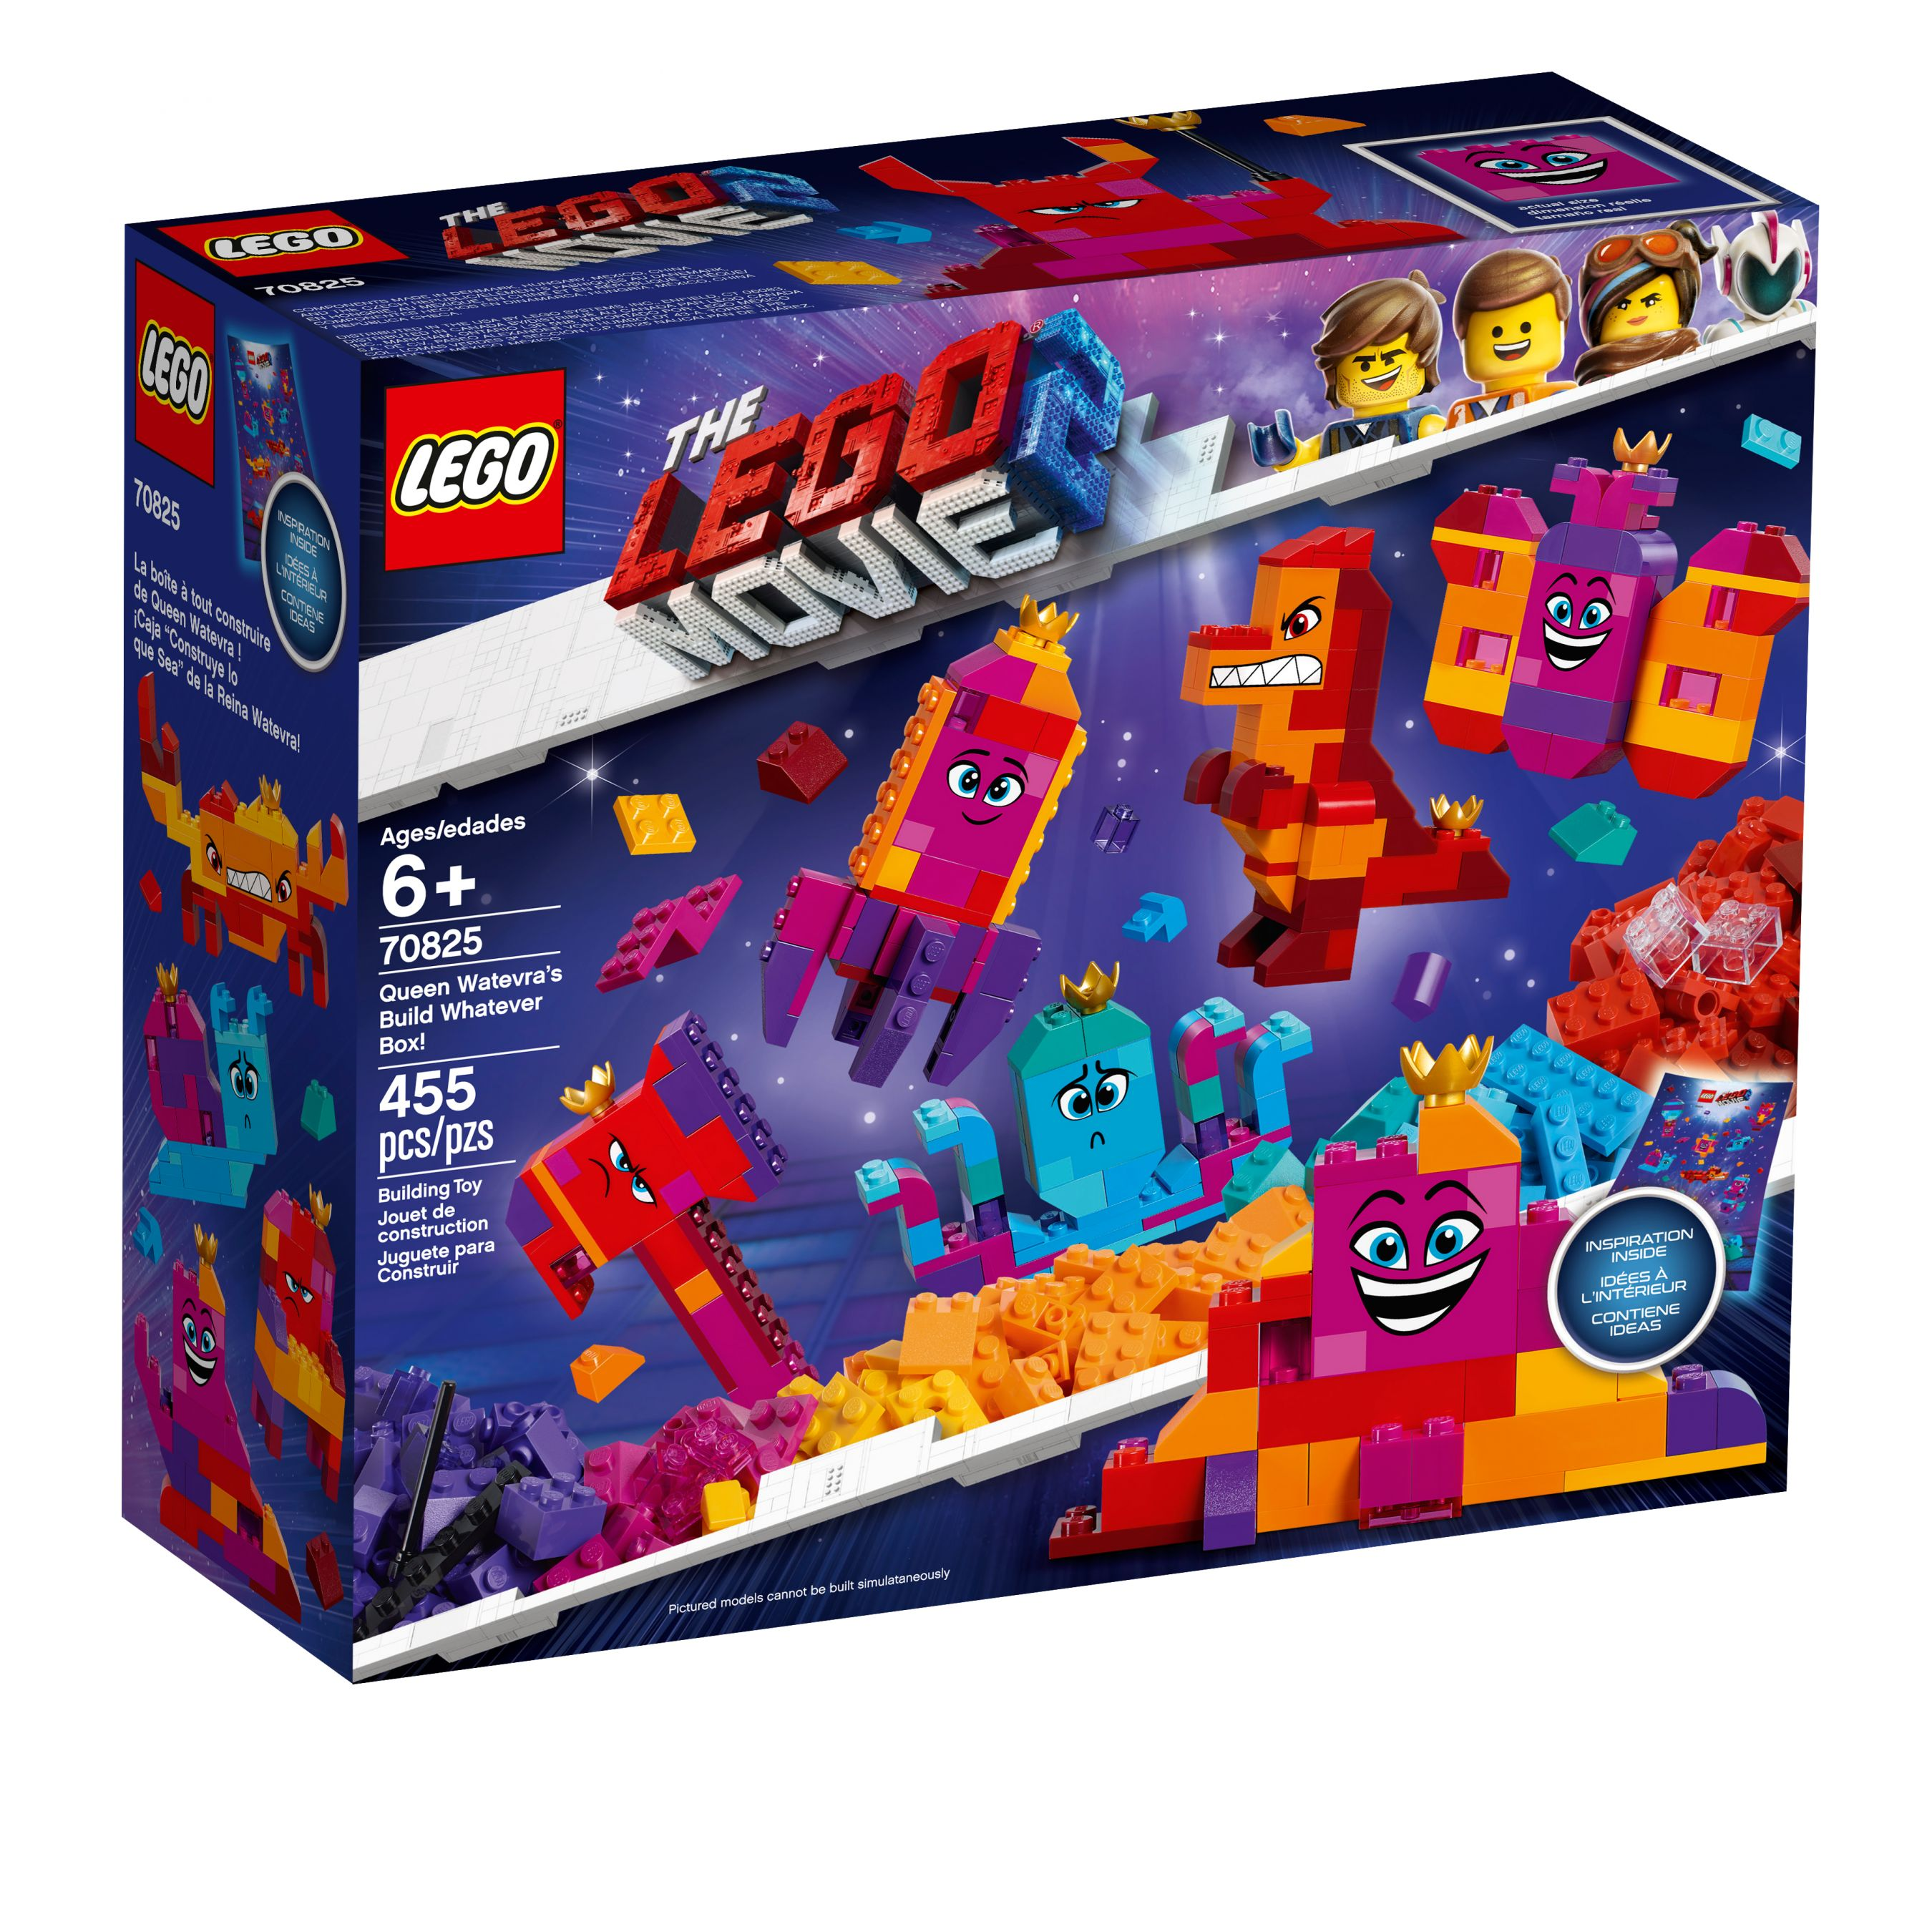 LEGO The LEGO Movie 2 70825 Königin Wasimma Si-Willis Bau-Was-Du-Willst-Box! LEGO_70825_alt1.jpg